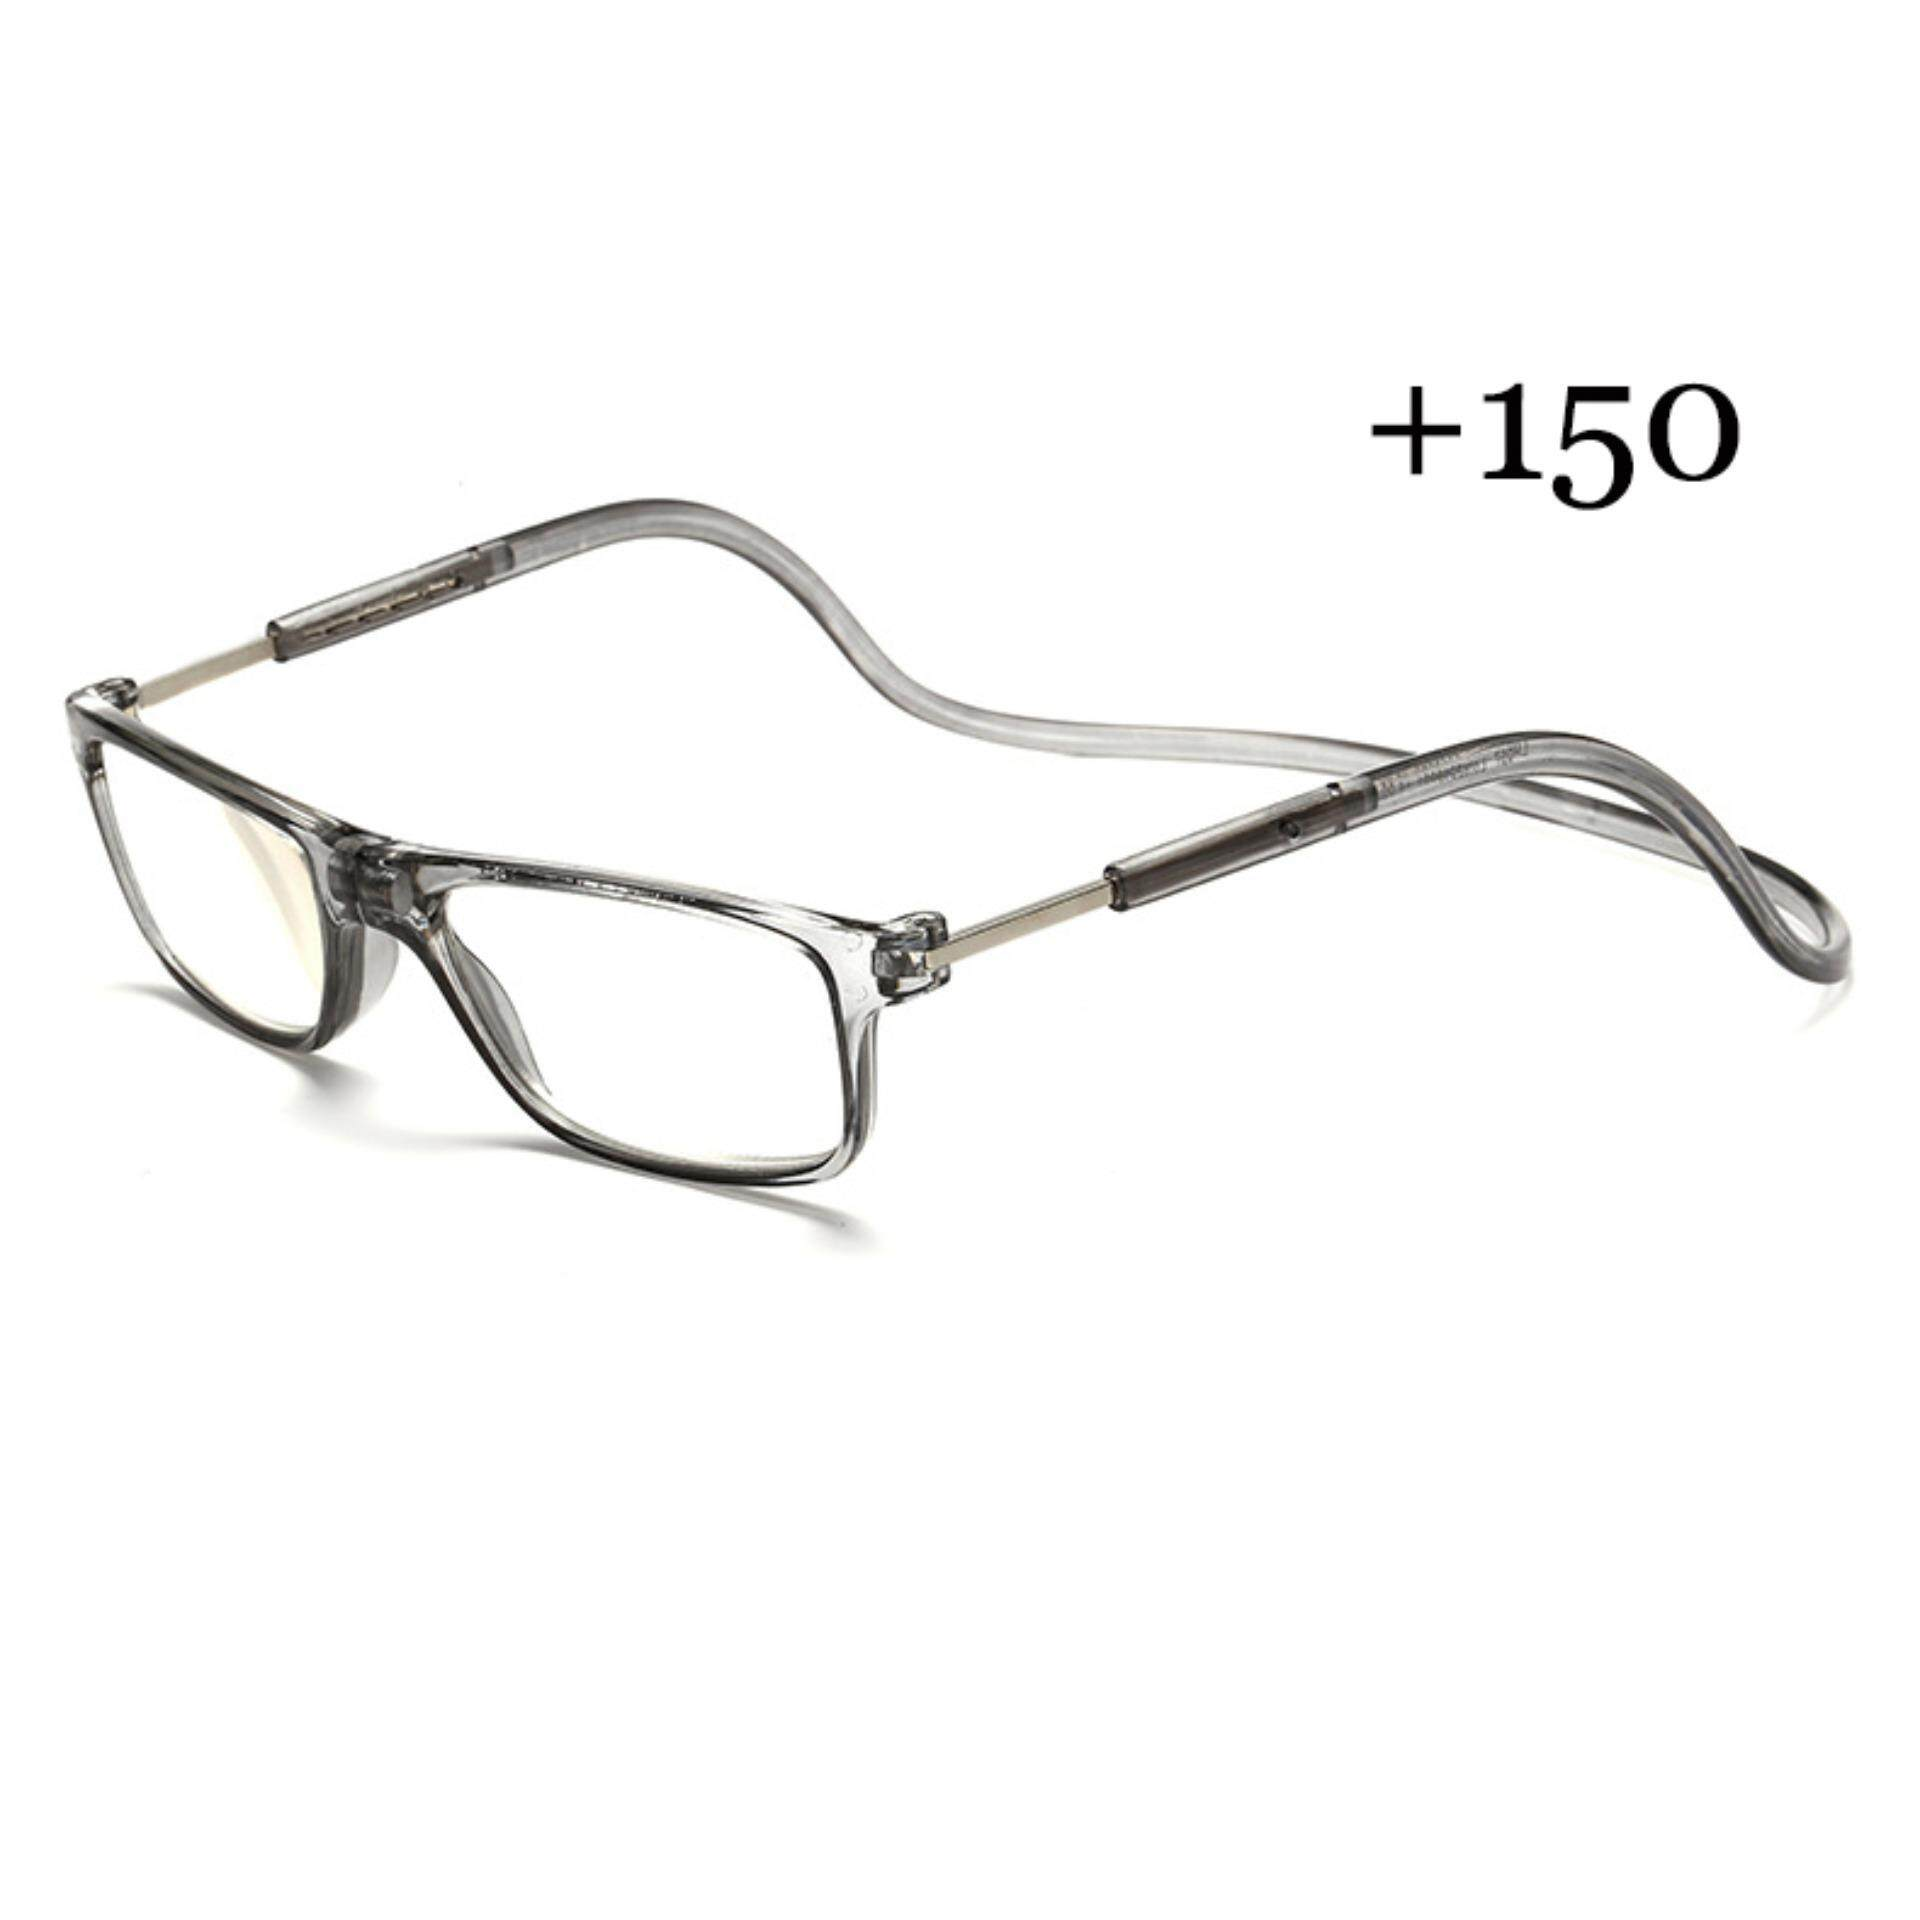 9b55c5faf4 Magnetic Reading Glasses Click Adjustable Reading Eyeglasses Hanging Rim  Grey 150